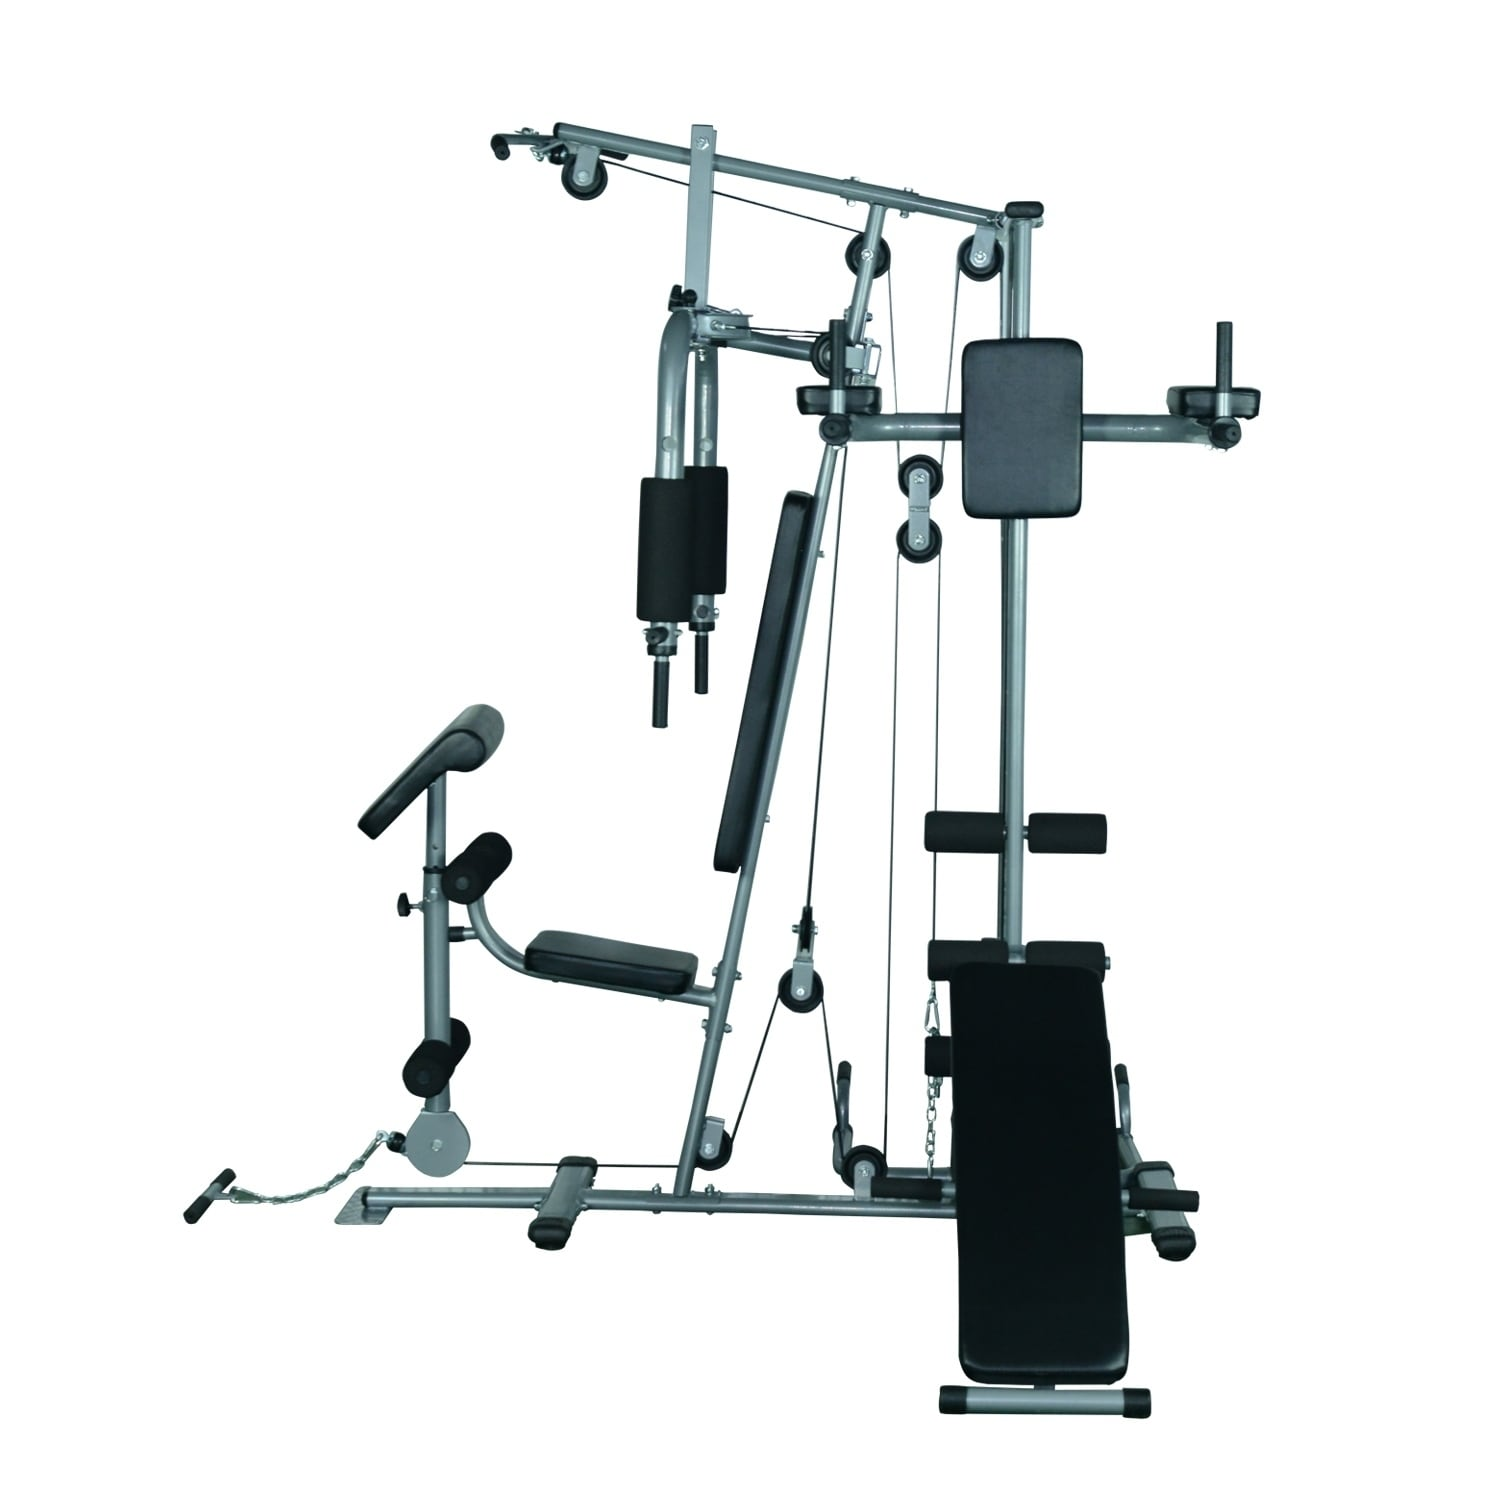 Soozier Complete Home Fitness Station Gym Machine With